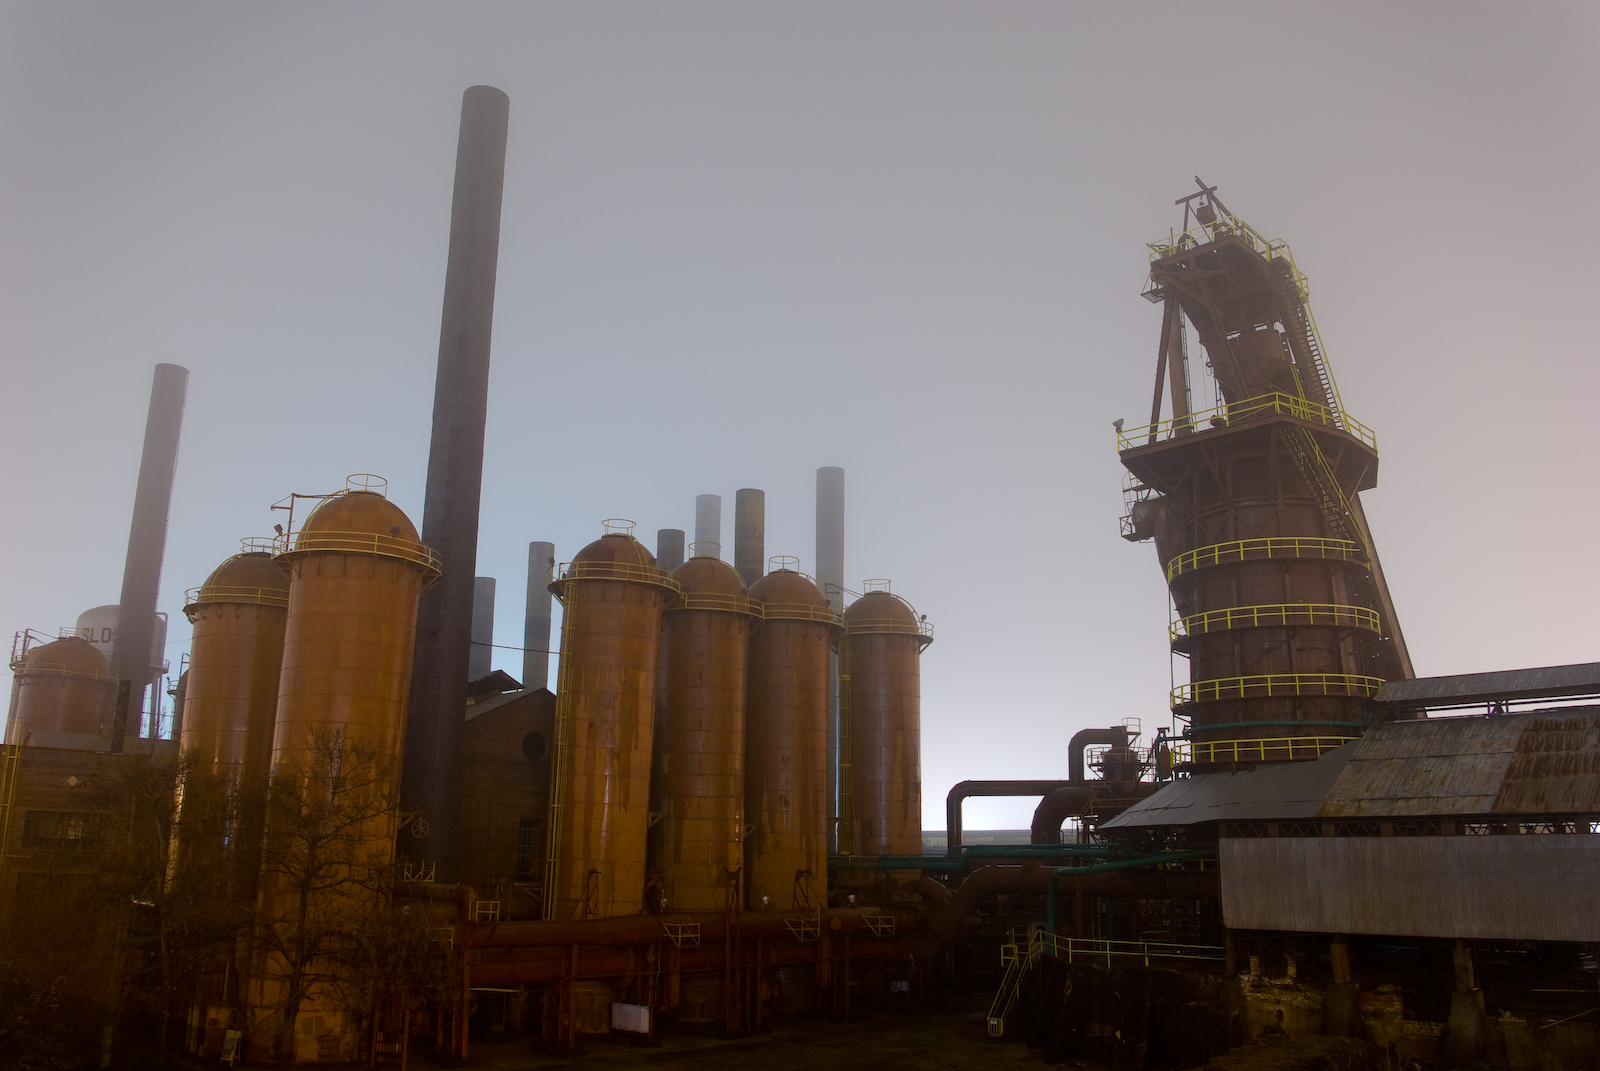 Sloss Furnace is haunted by one of the most evil